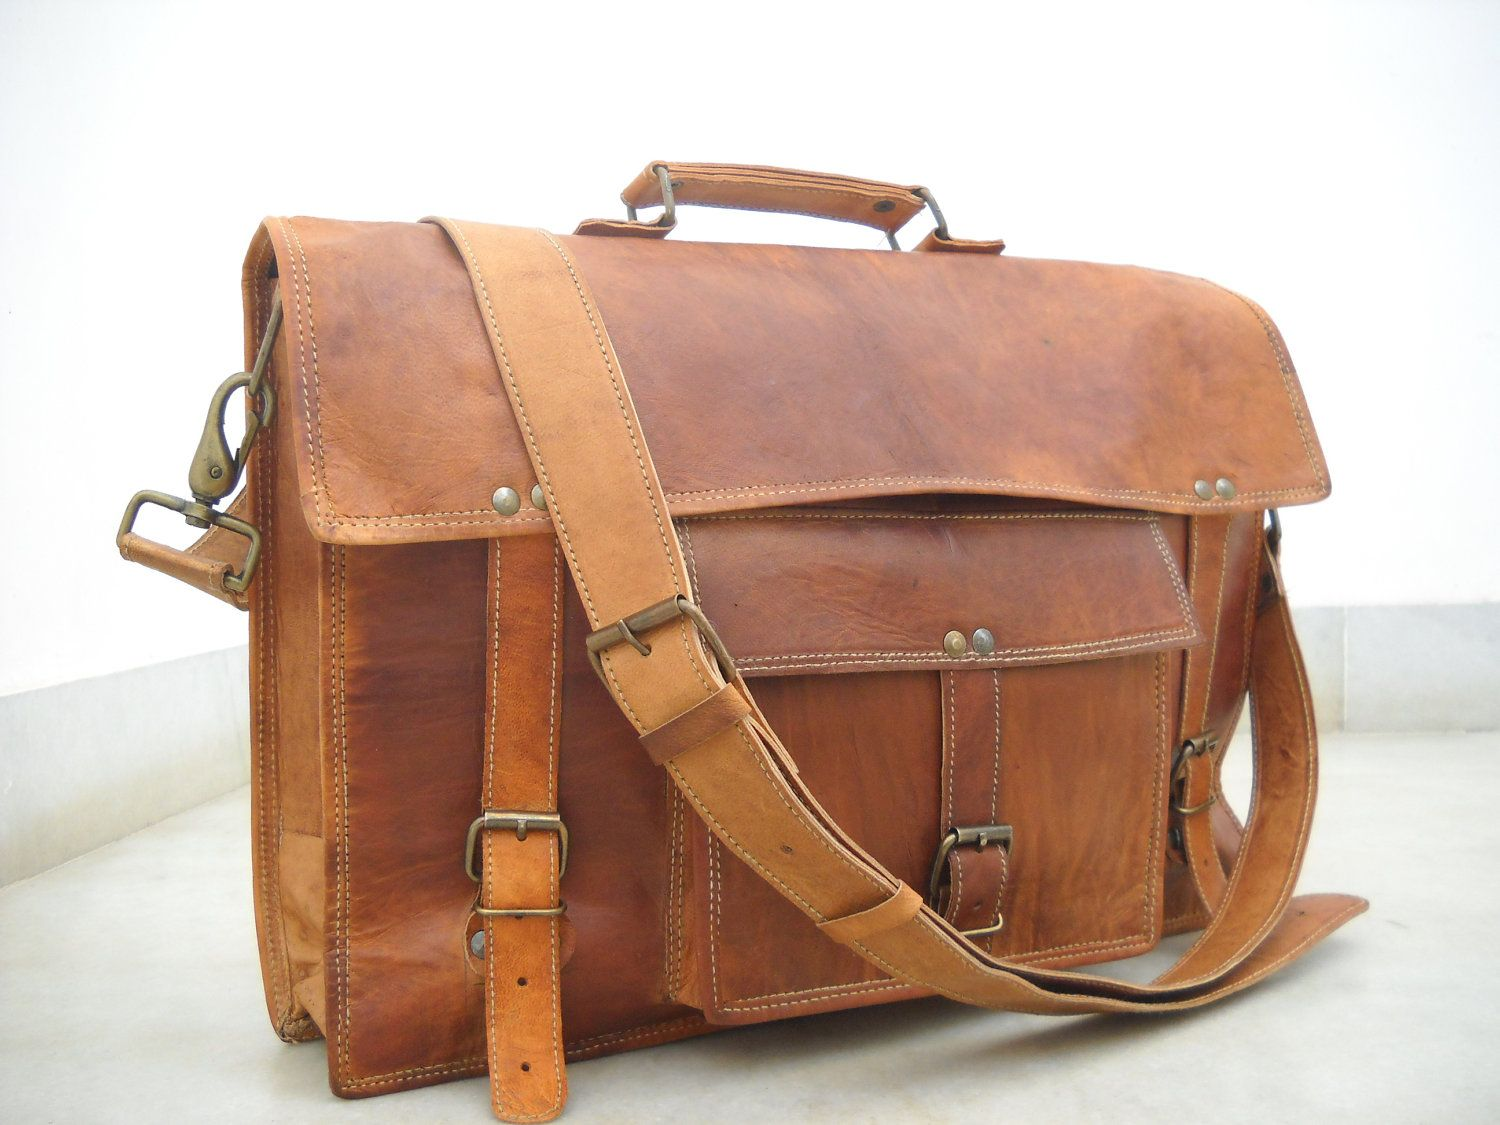 Leather Messenger Bag Office bag Laptop Bag 17 Inches Long 13 Inches Height. $94.00, via Etsy.